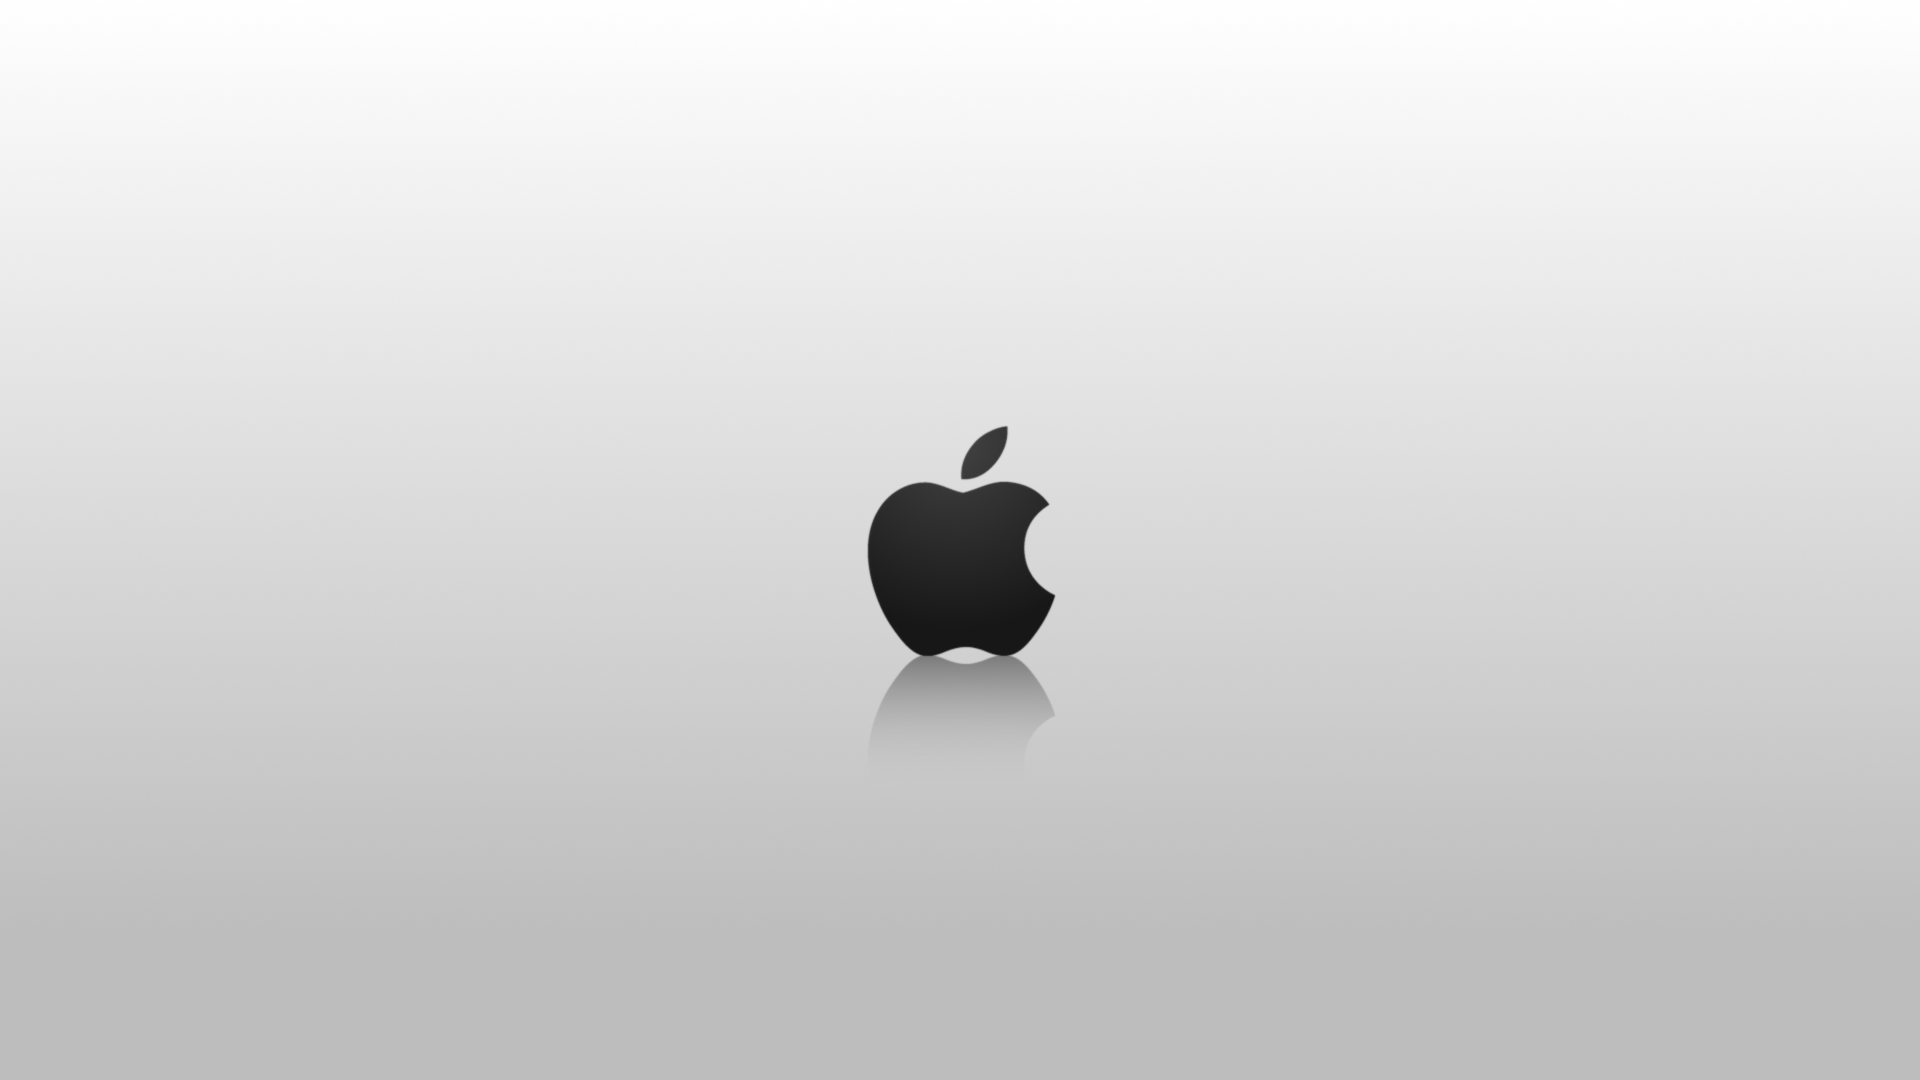 Wallpapers Apple Group (92+)